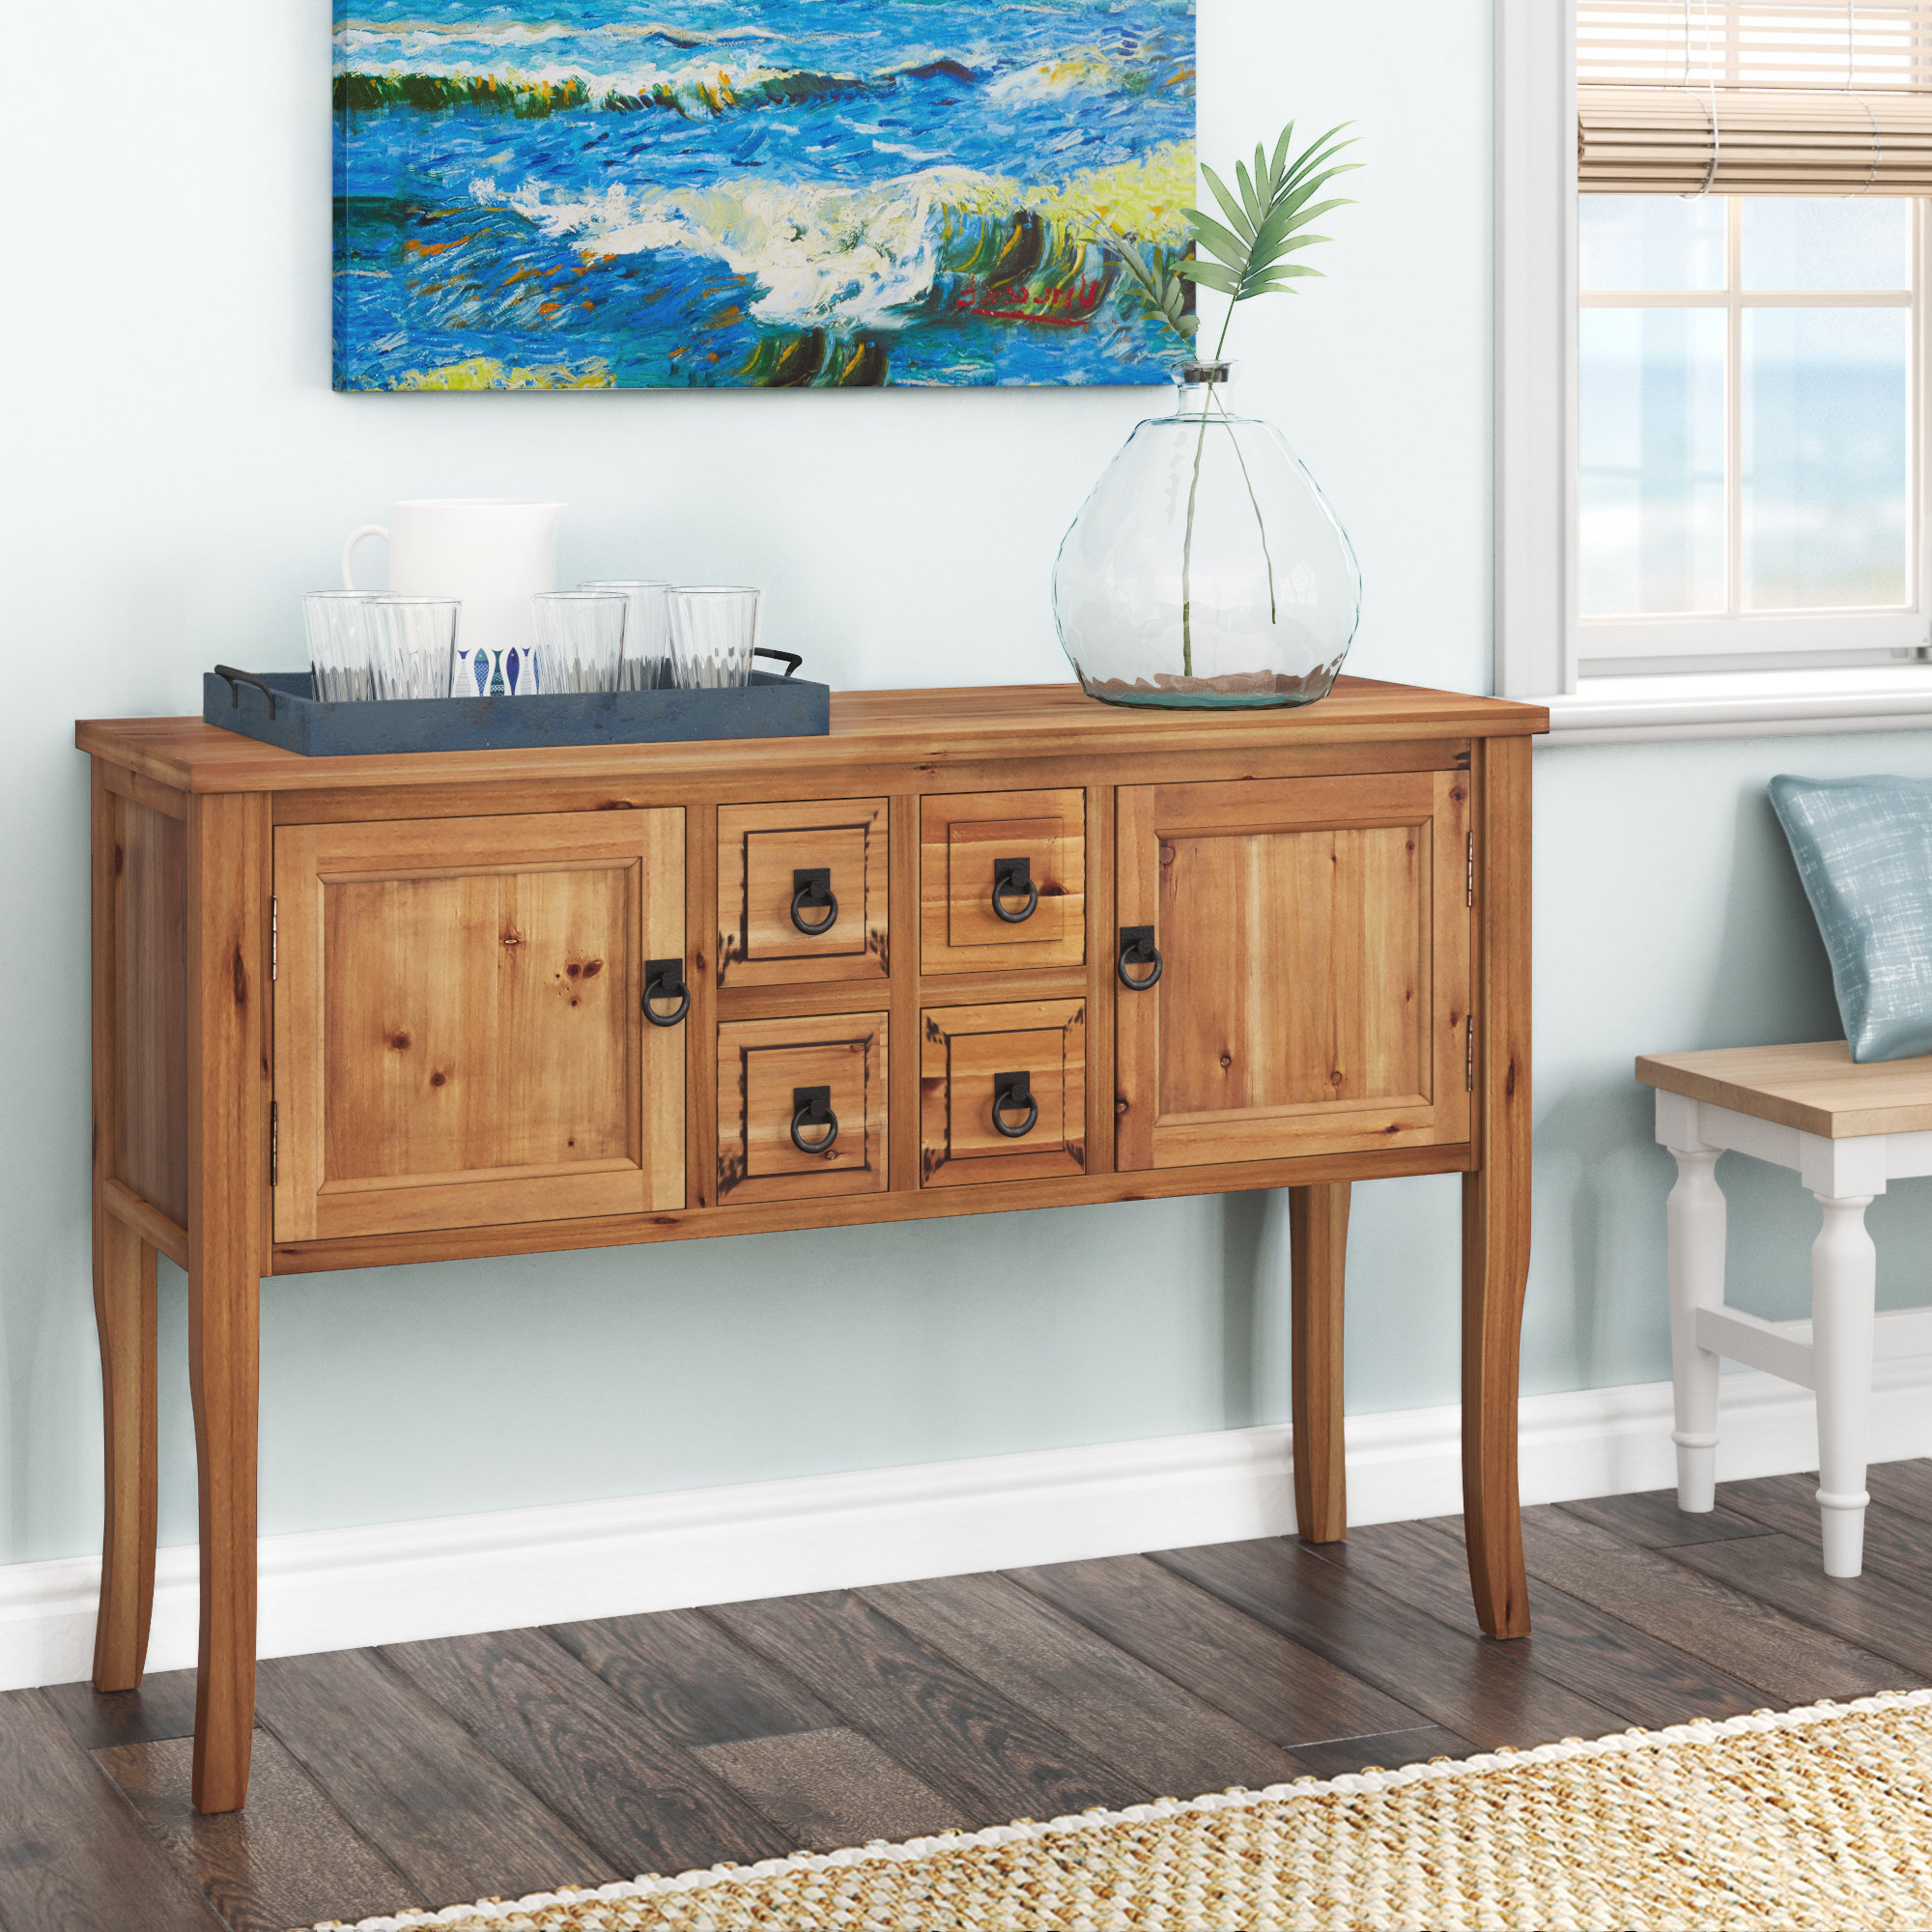 Chaffins Sideboards Intended For Fashionable Solid Wood Sideboards & Buffets You'll Love In 2019 (Gallery 9 of 20)